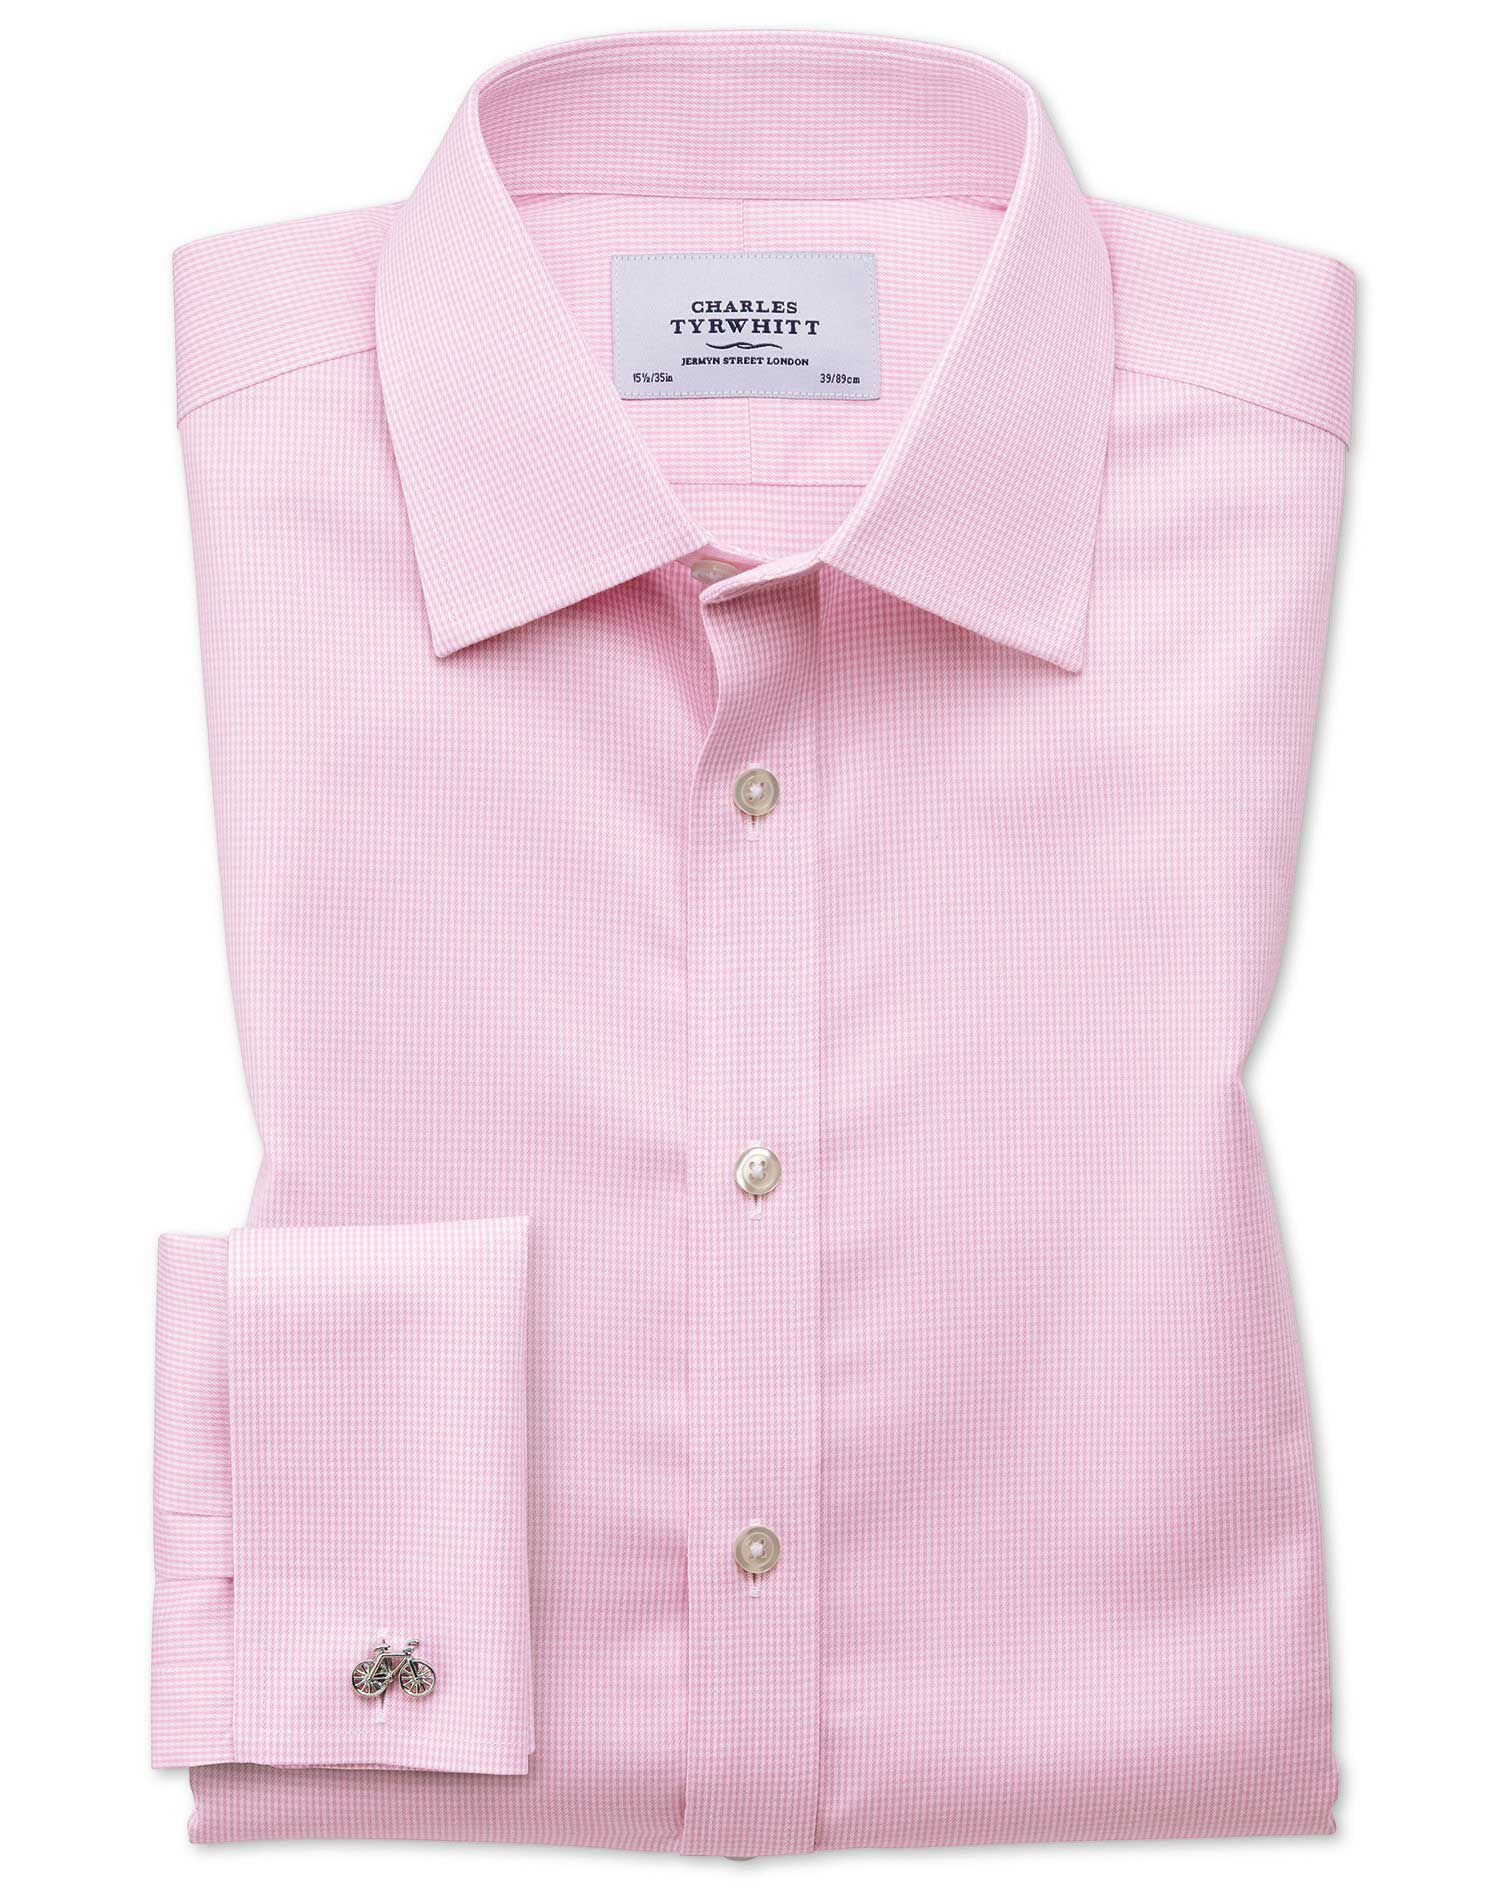 Slim Fit Non-Iron Puppytooth Light Pink Cotton Formal Shirt Single Cuff Size 18/37 by Charles Tyrwhi